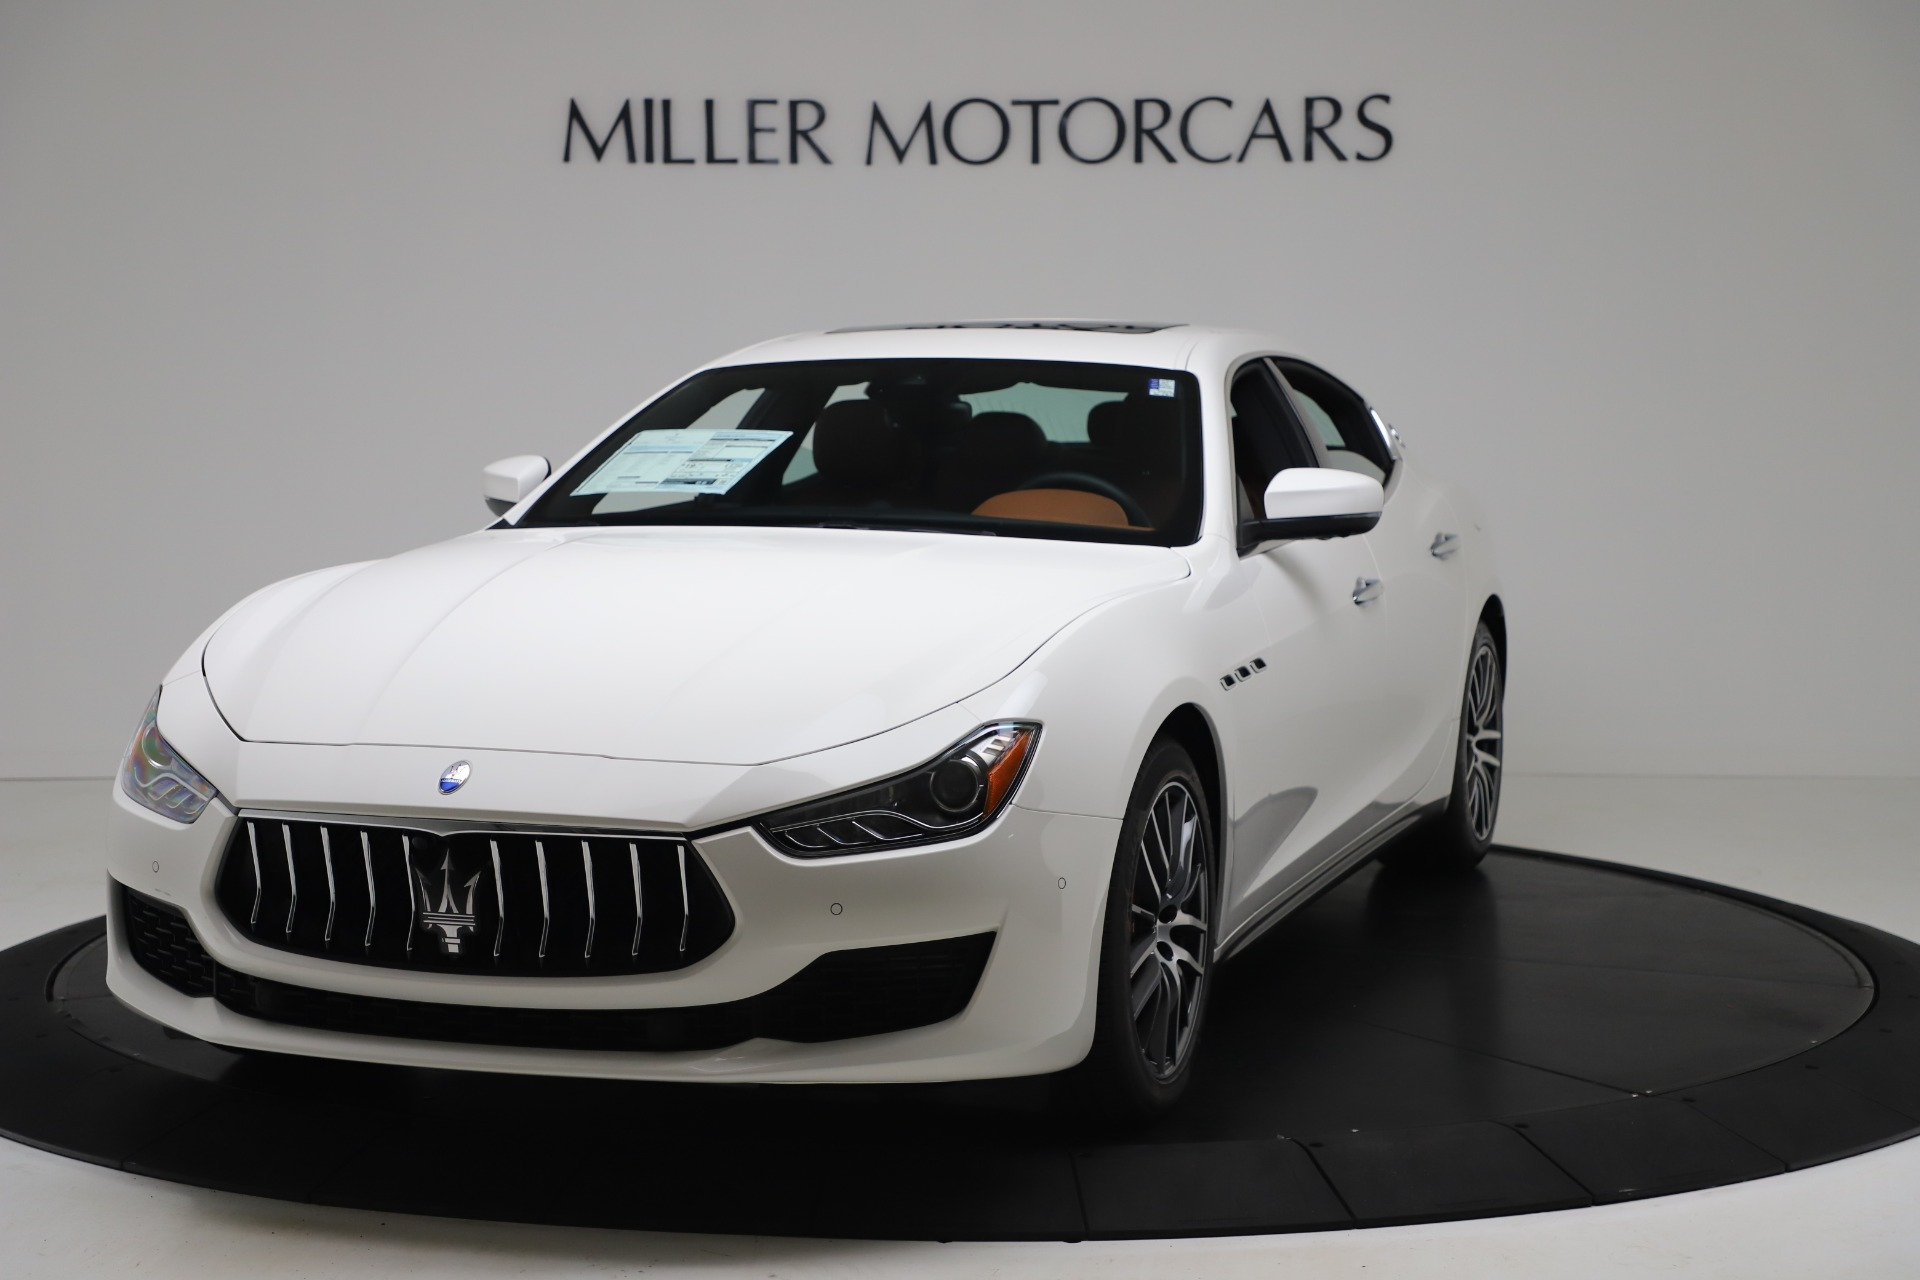 New 2020 Maserati Ghibli S Q4 for sale $84,735 at Alfa Romeo of Greenwich in Greenwich CT 06830 1